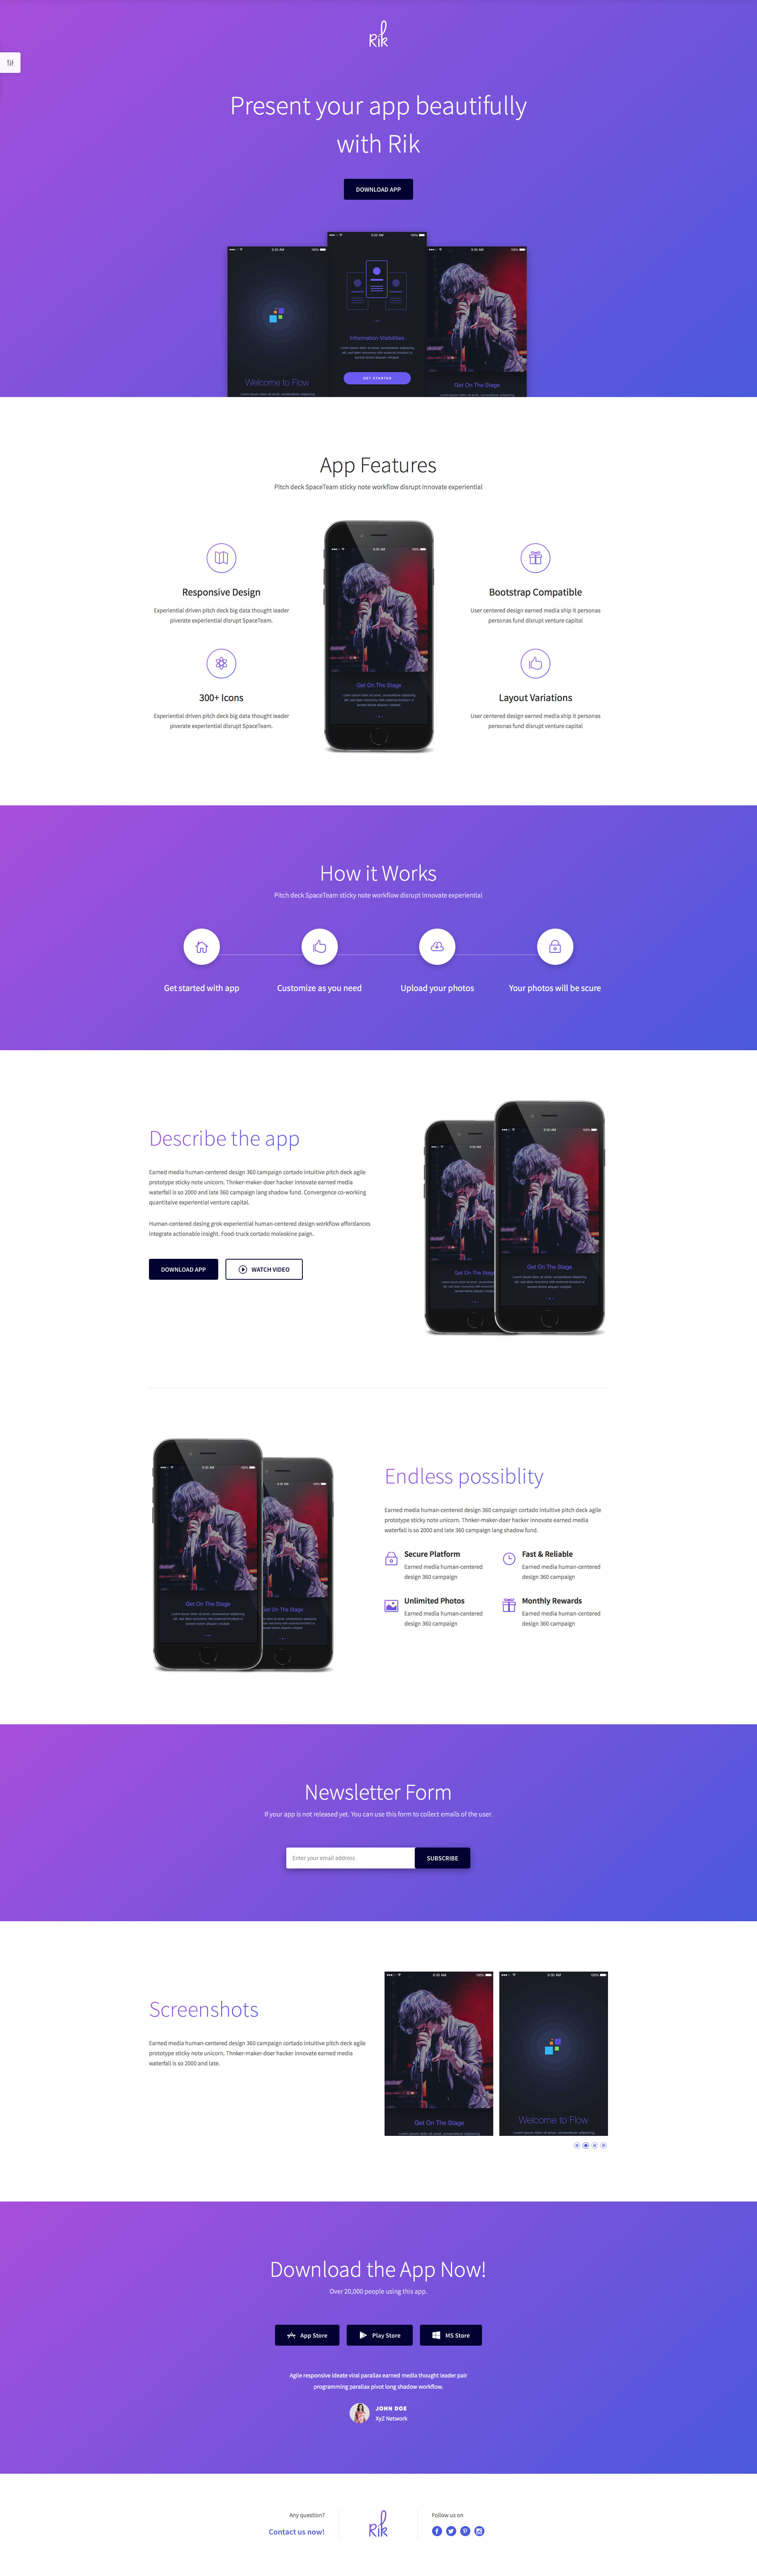 Rik is a free responsive HTML5 website template based on Bootstrap Framework. It's a free responsive template built with the latest HTML5, CSS3. Rik is the ideal choice for App or product websites.